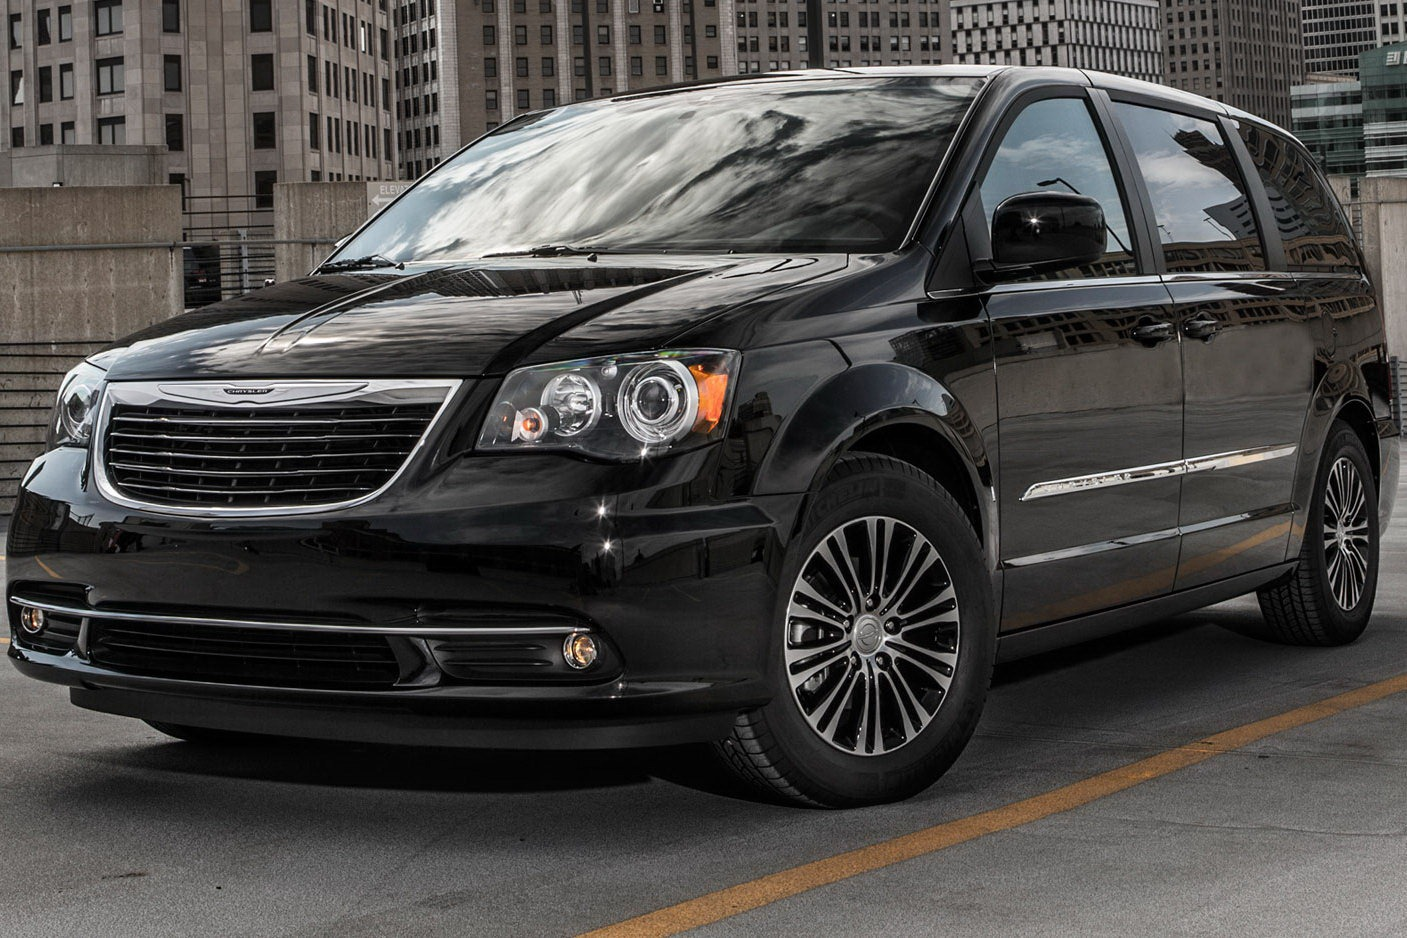 chrysler town & country wallpaper #13